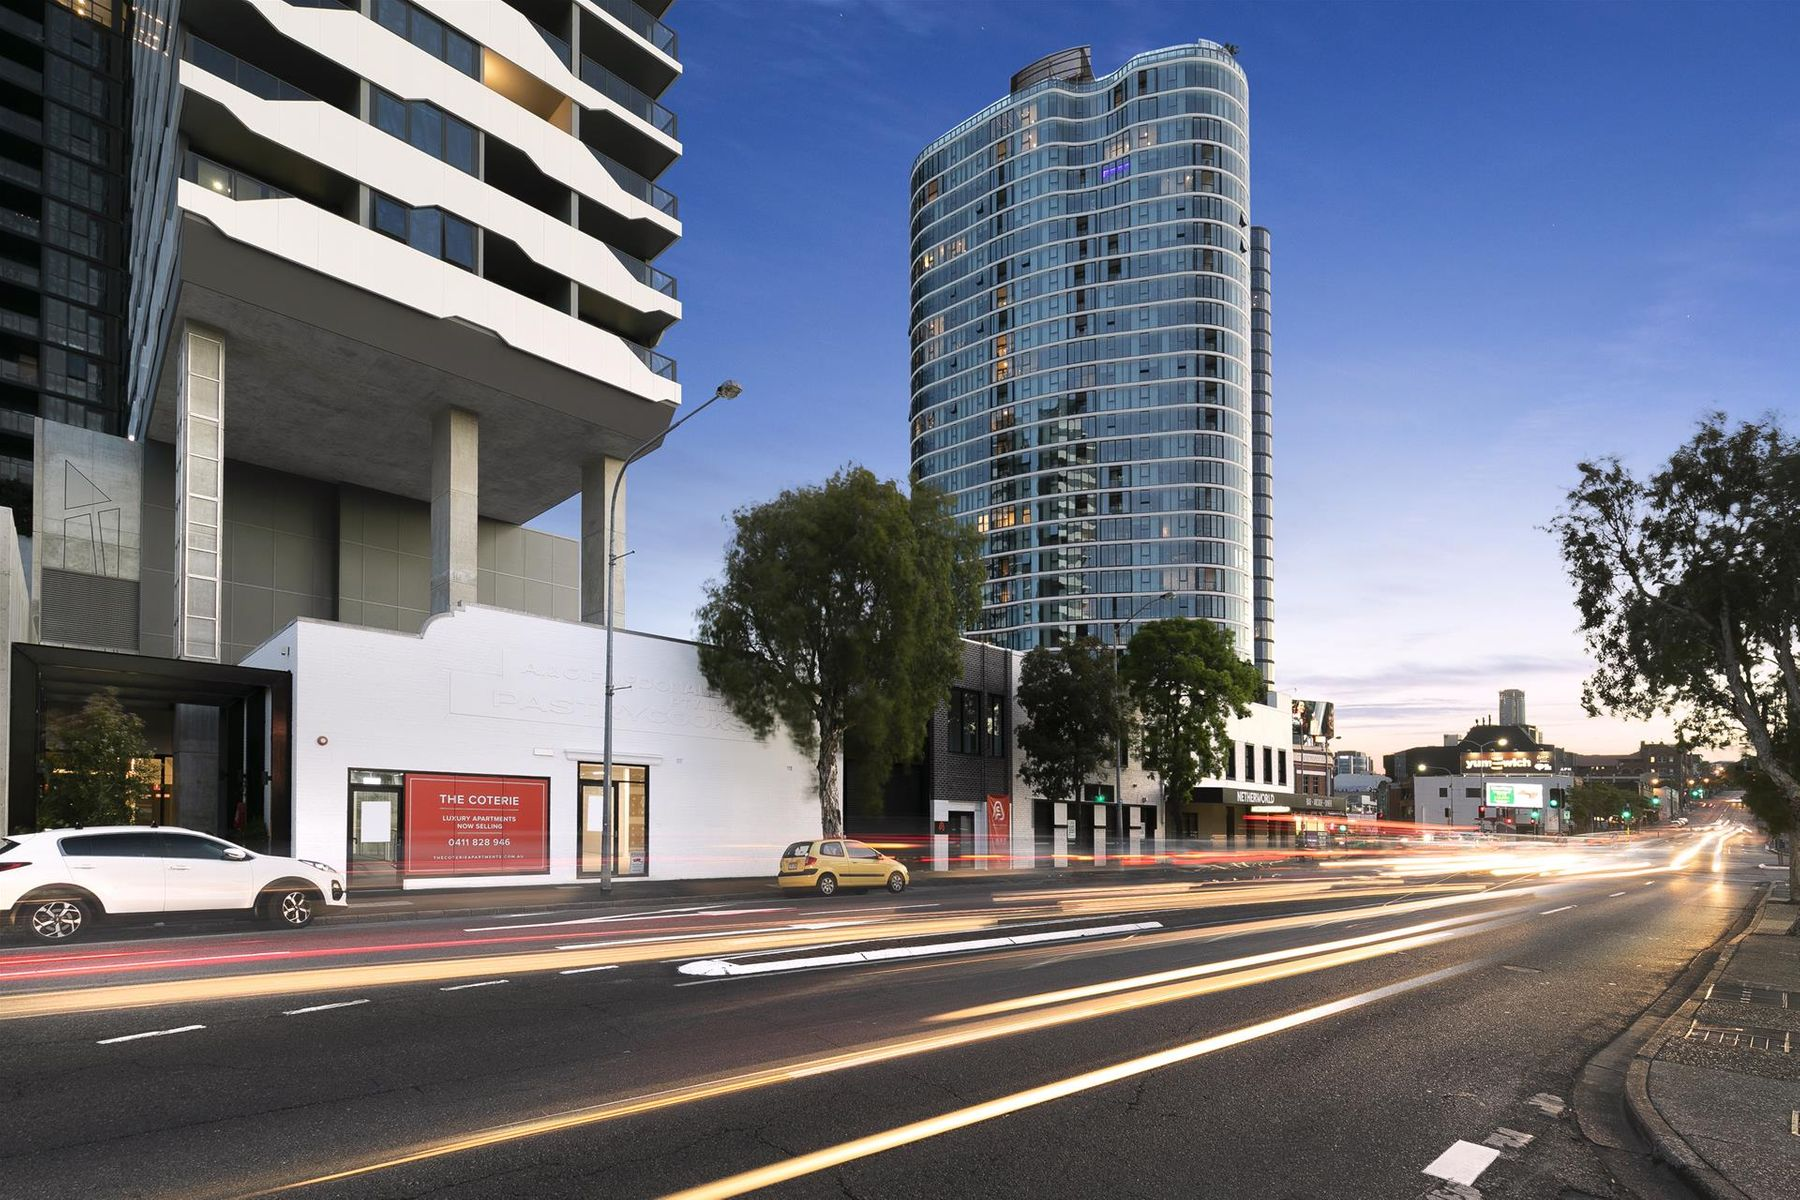 3/365 St pauls Terrace, Fortitude Valley, QLD 4006